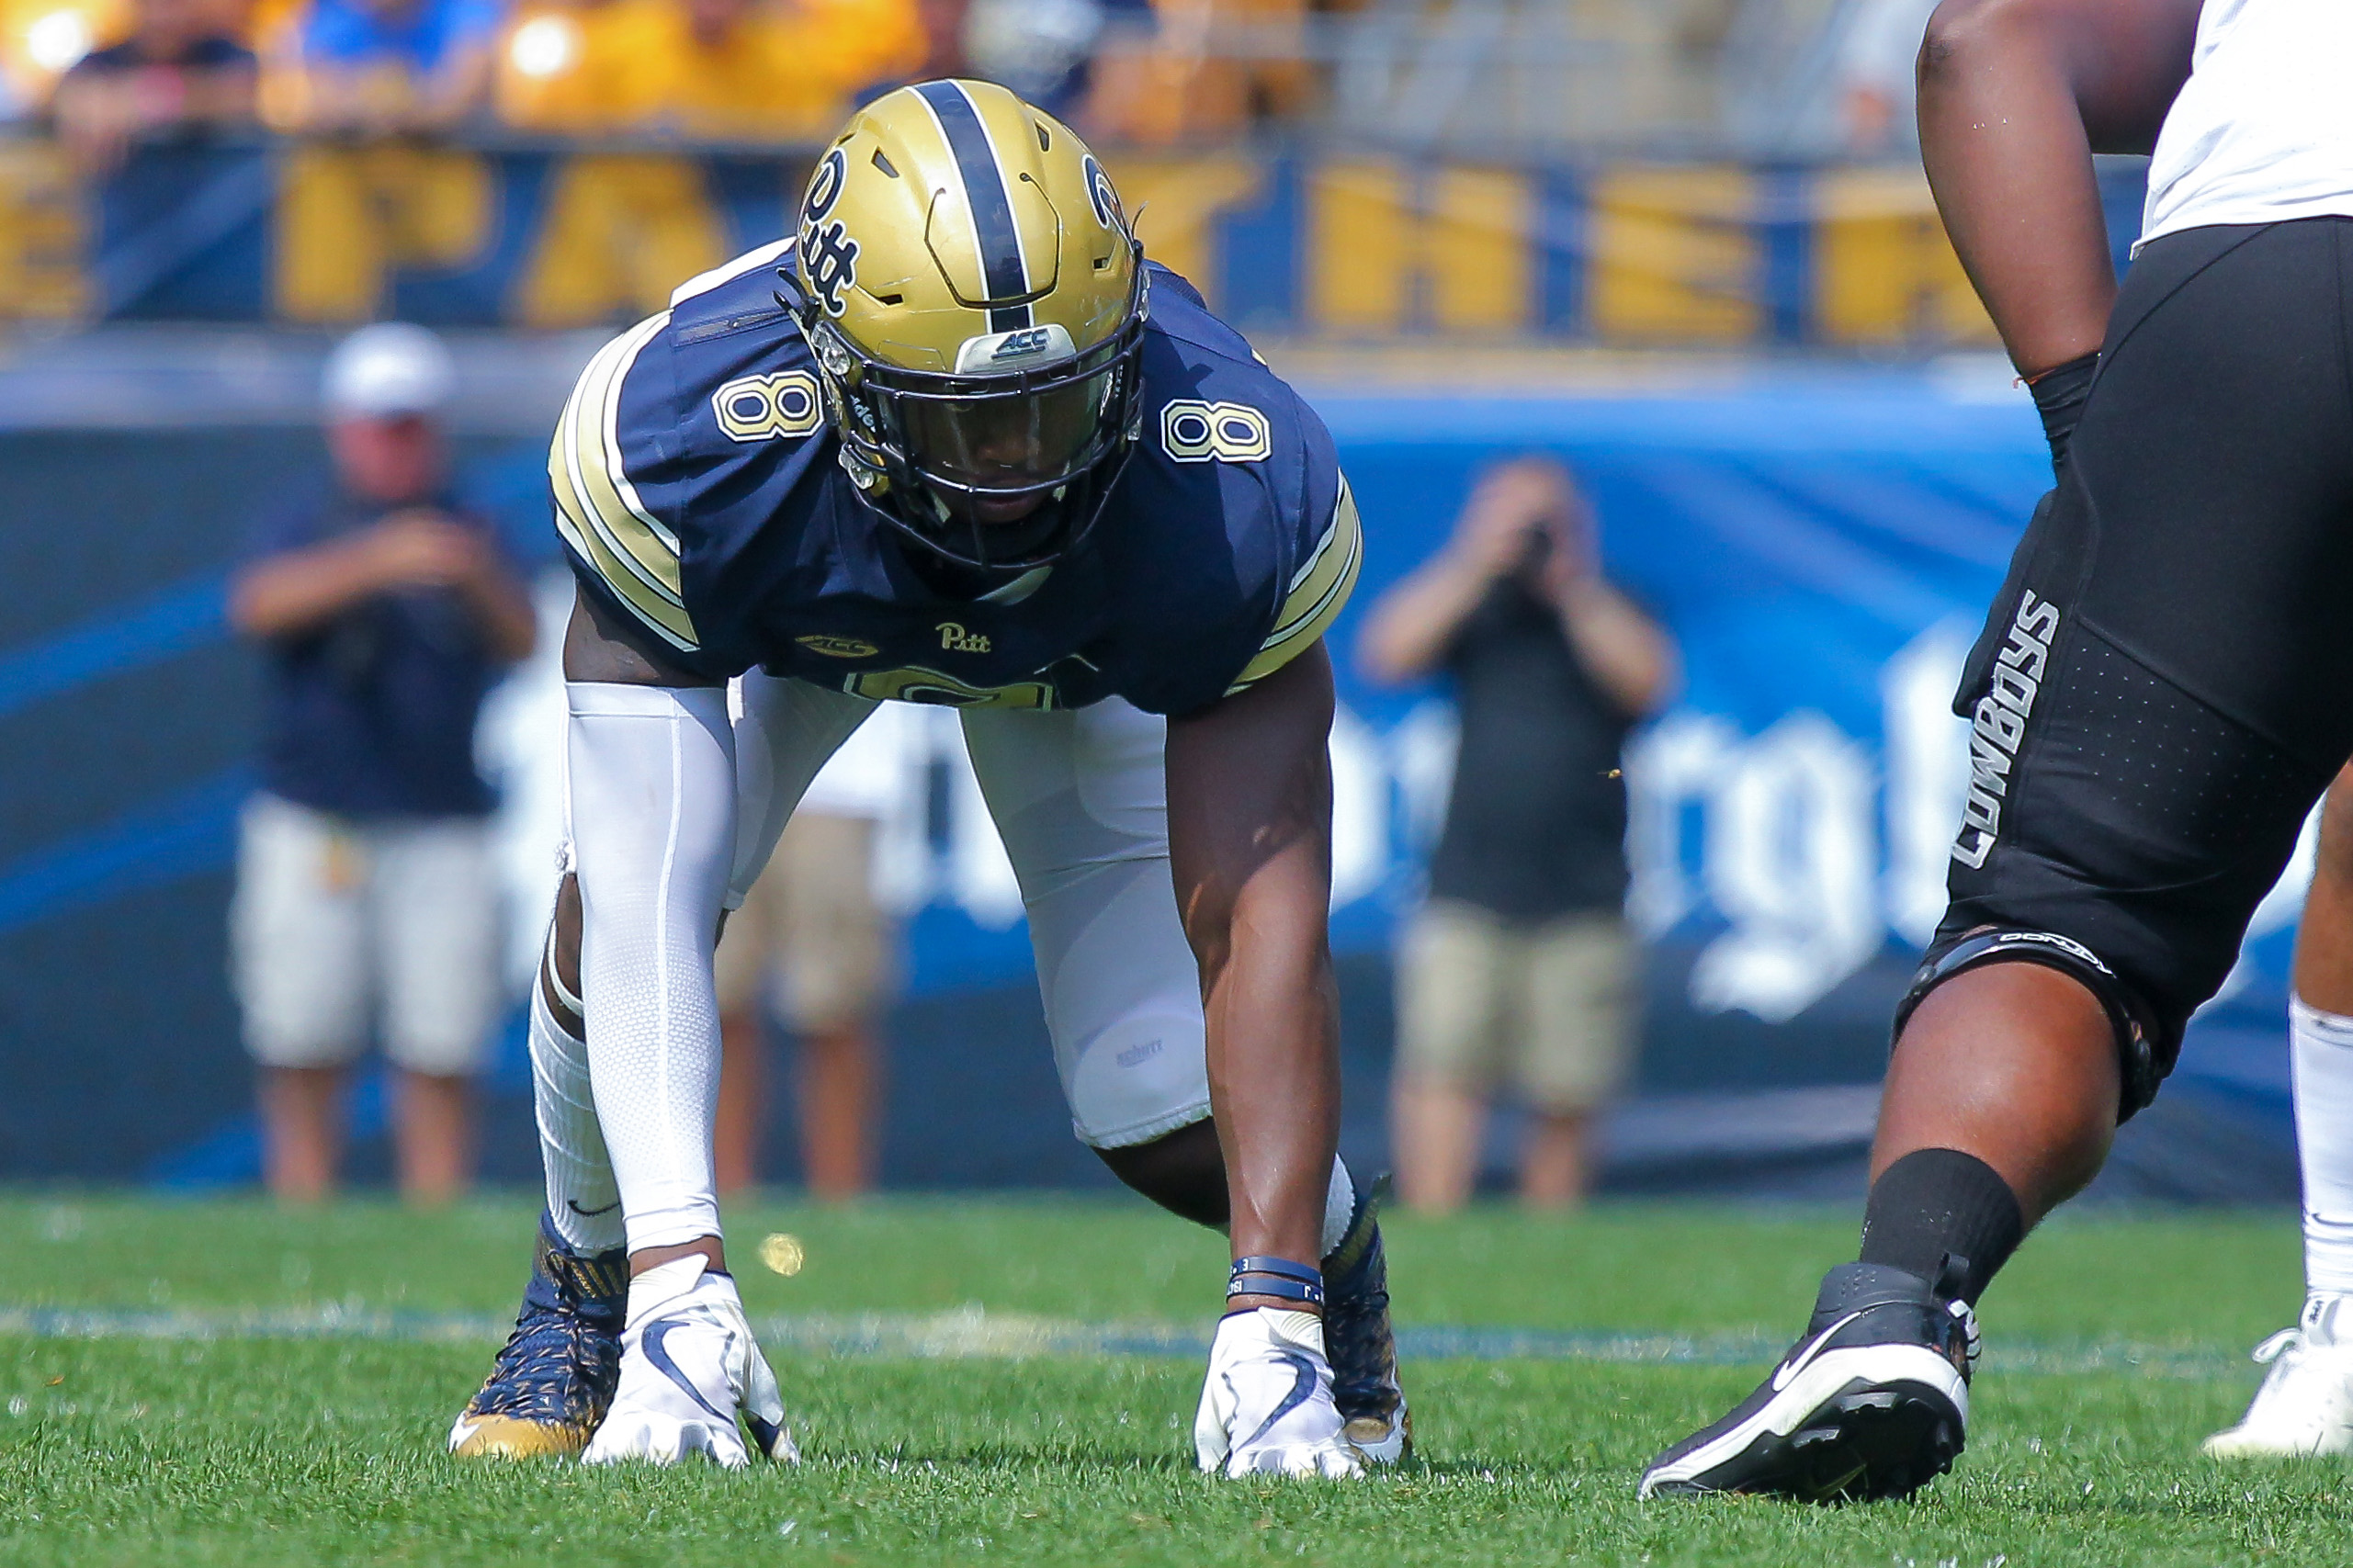 Pitt Panthers defensive lineman Dewayne Hendrix is in the ready position for the 2018 season and to get after opposing quarterbacks. Photo: Jeffrey Gamza/Pitt Athletics.